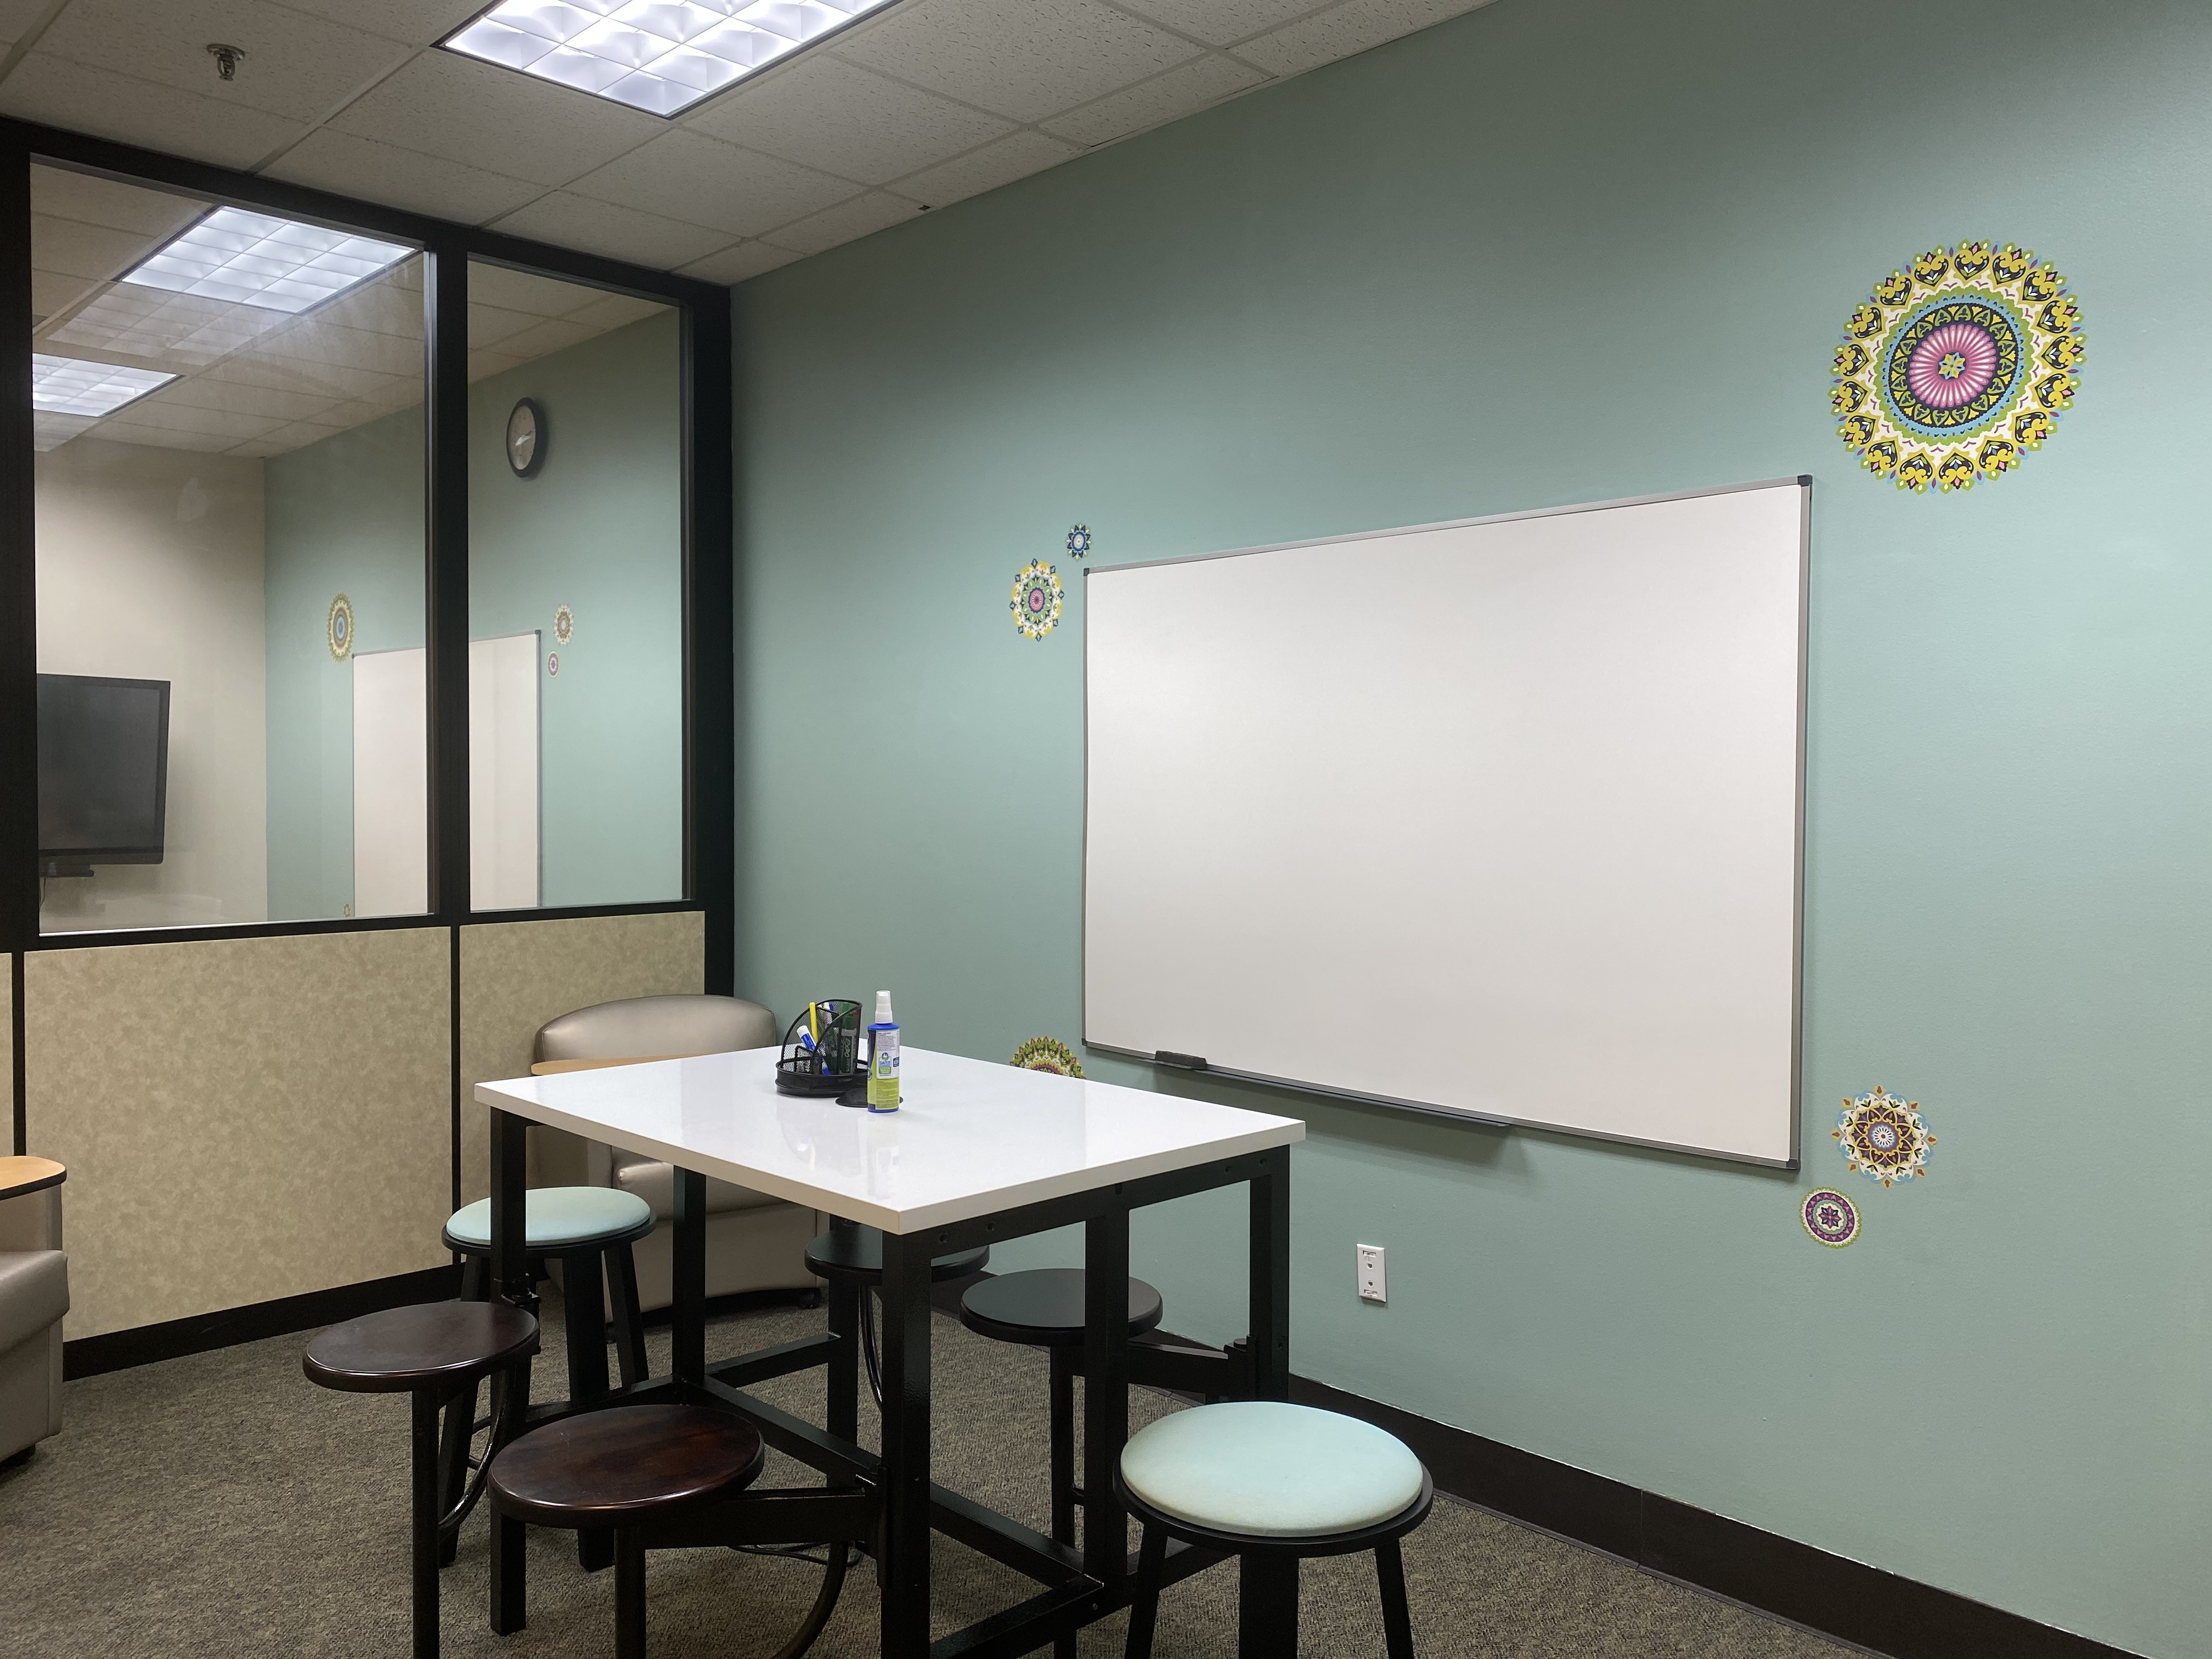 Jesup Library Study Room 1 with white board on the wall and a white board table.